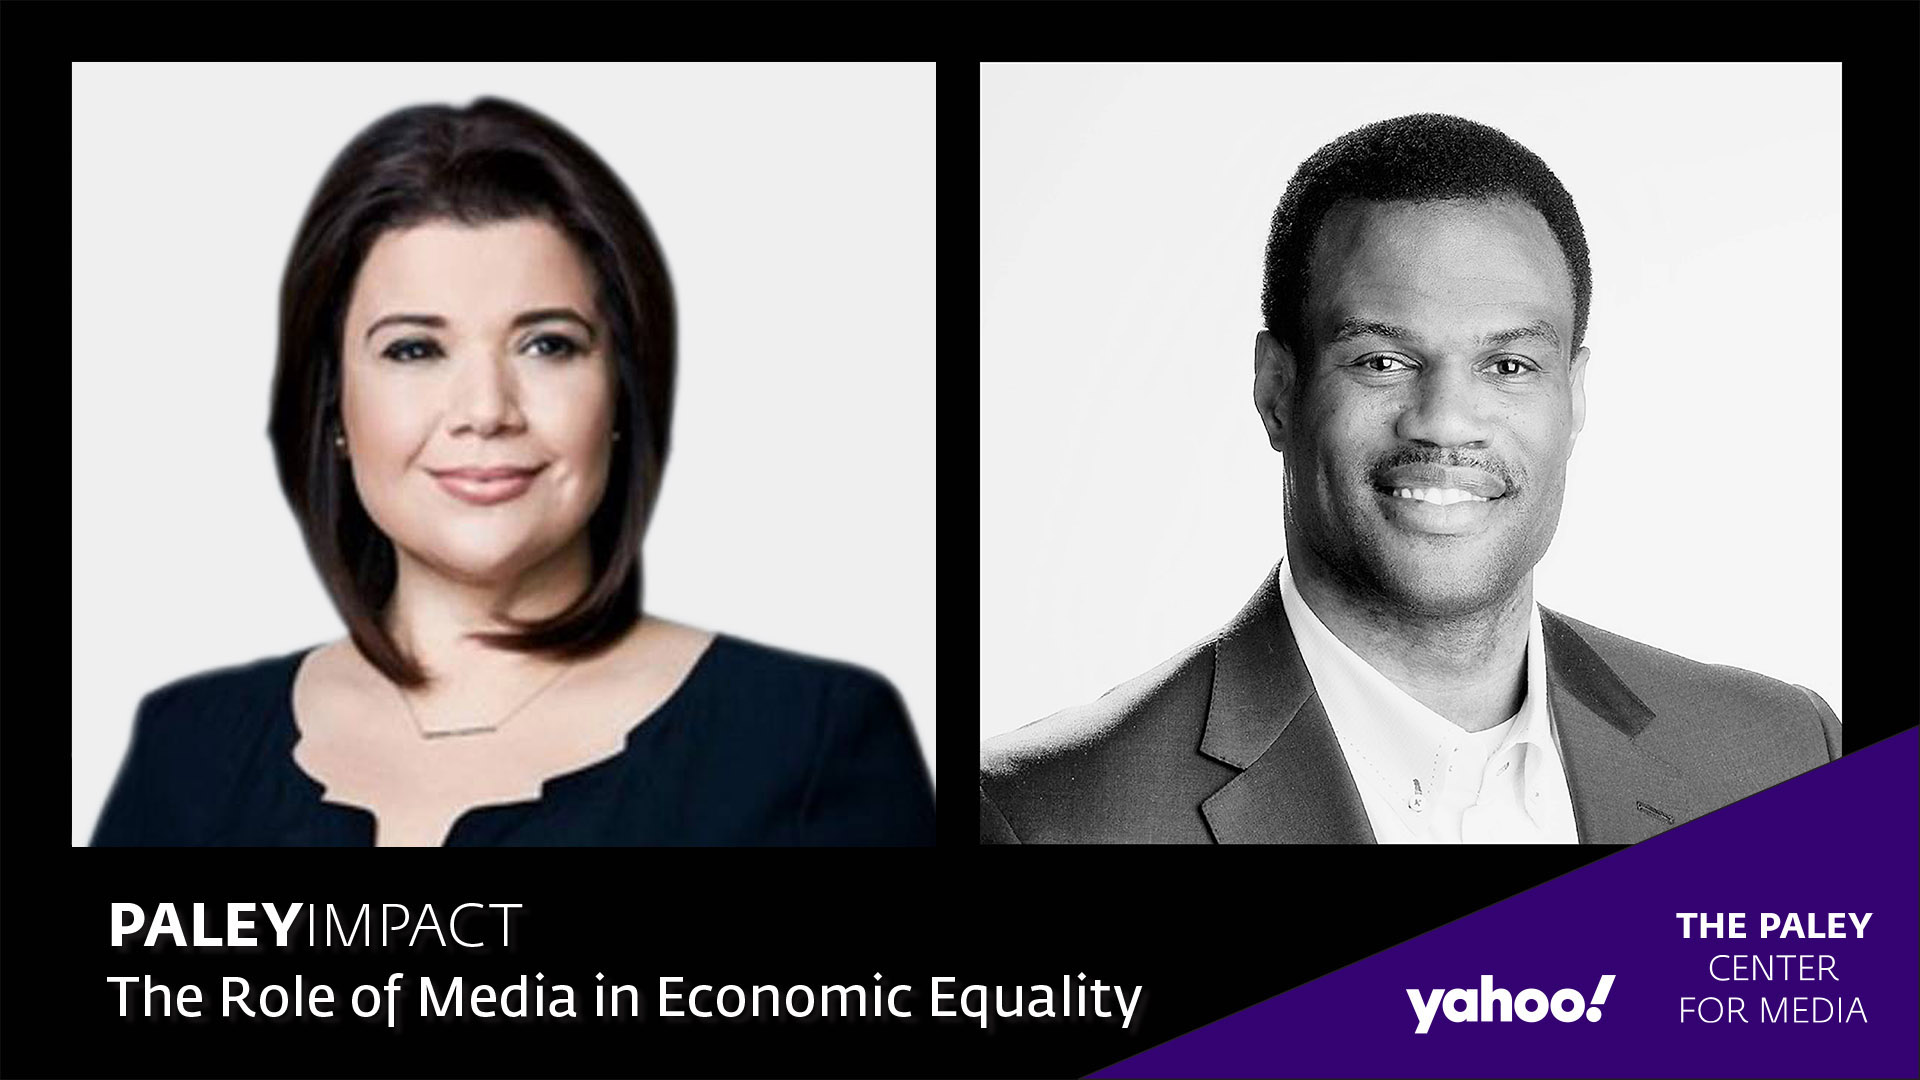 PaleyIMPACT: The Role of Media in Economic Equality